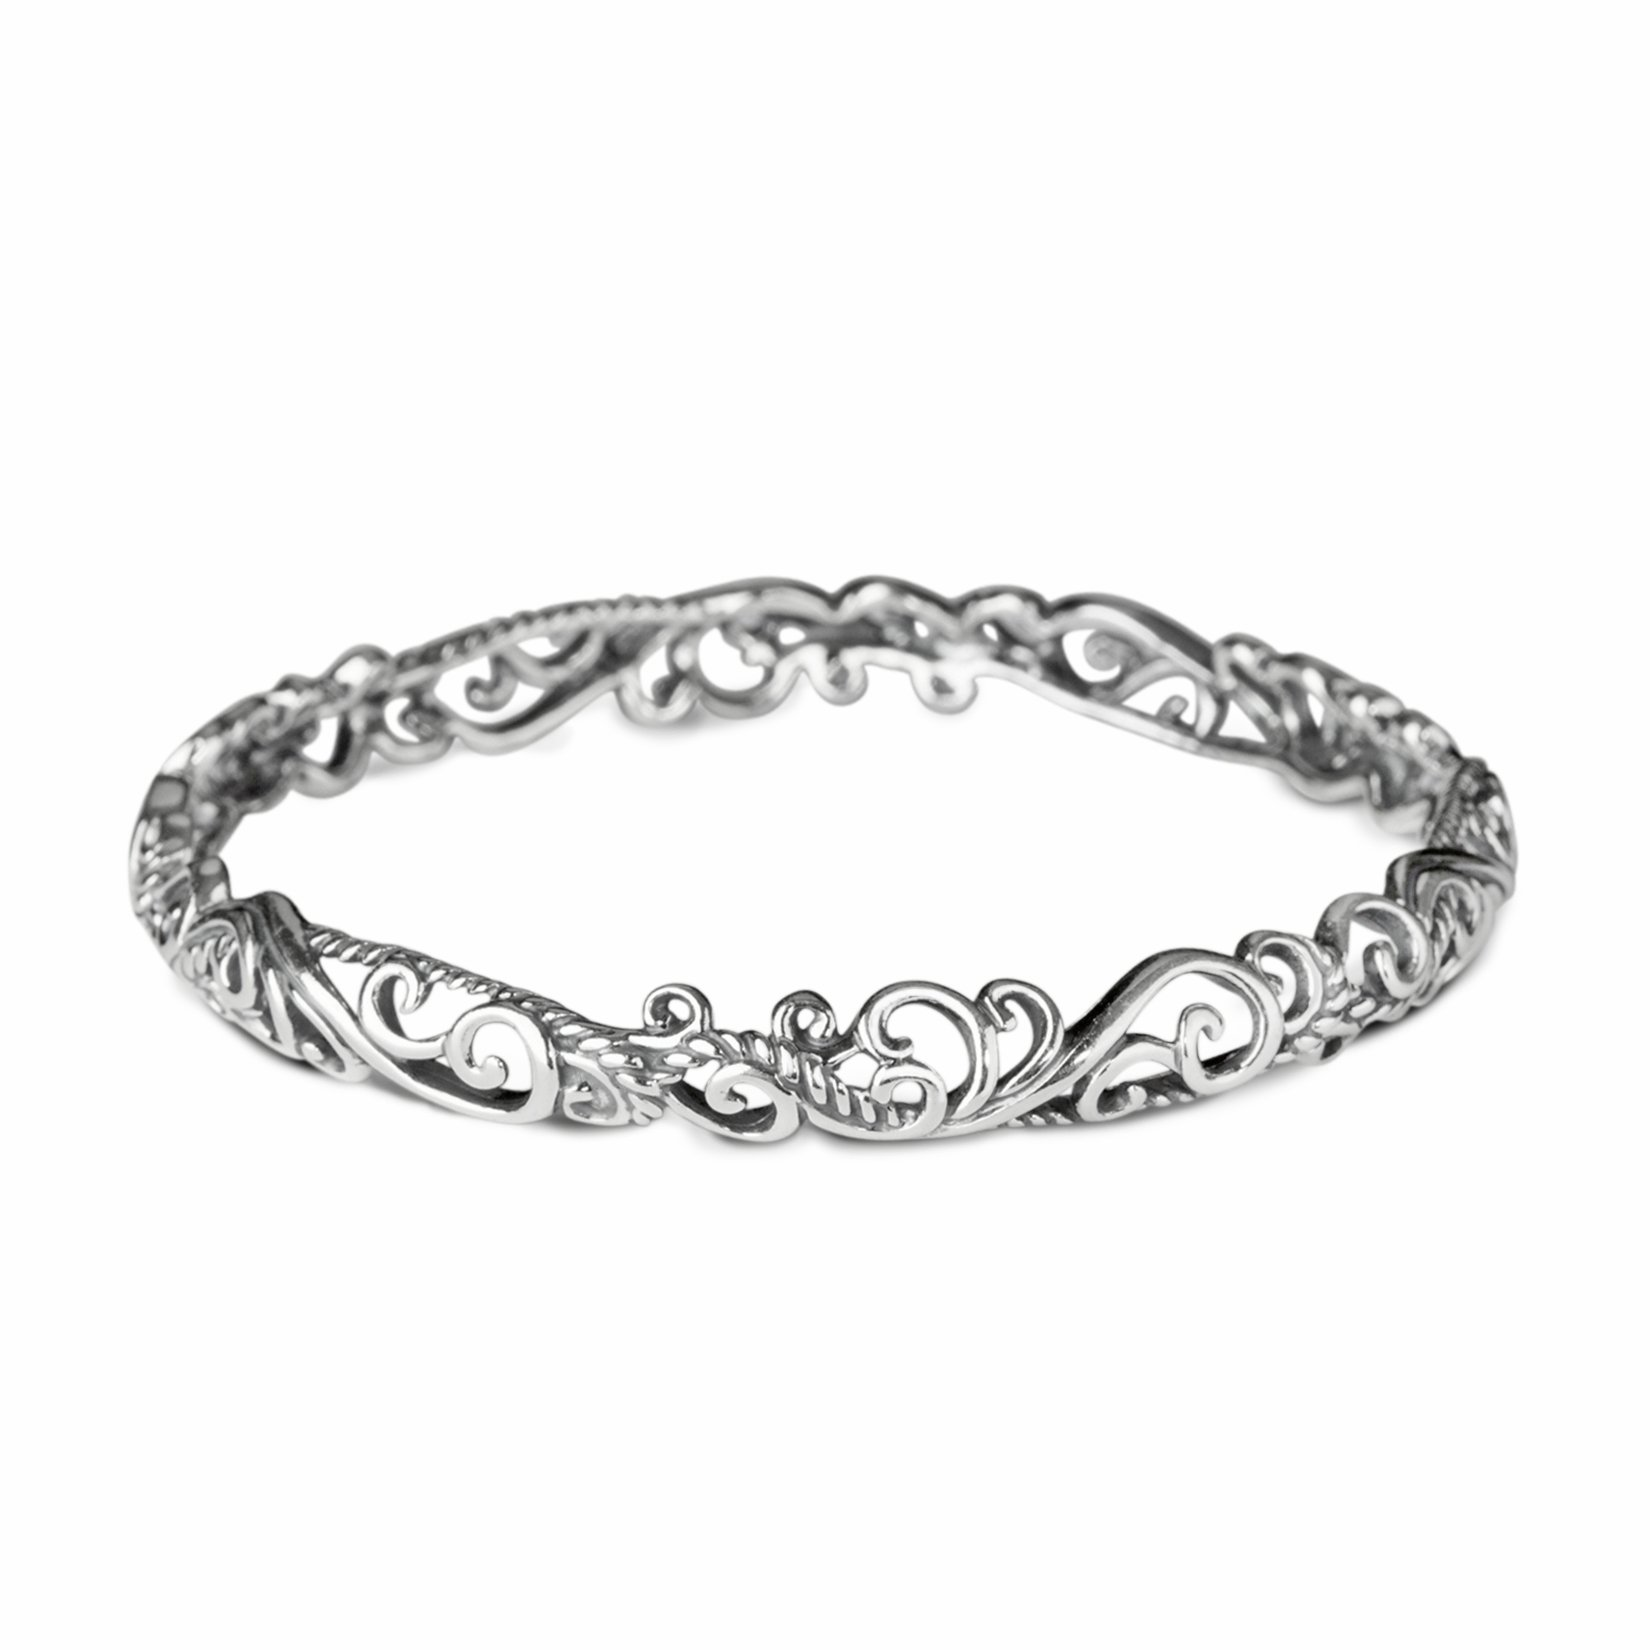 Carolyn Pollack Sterling Silver Bangle Bracelet, Small